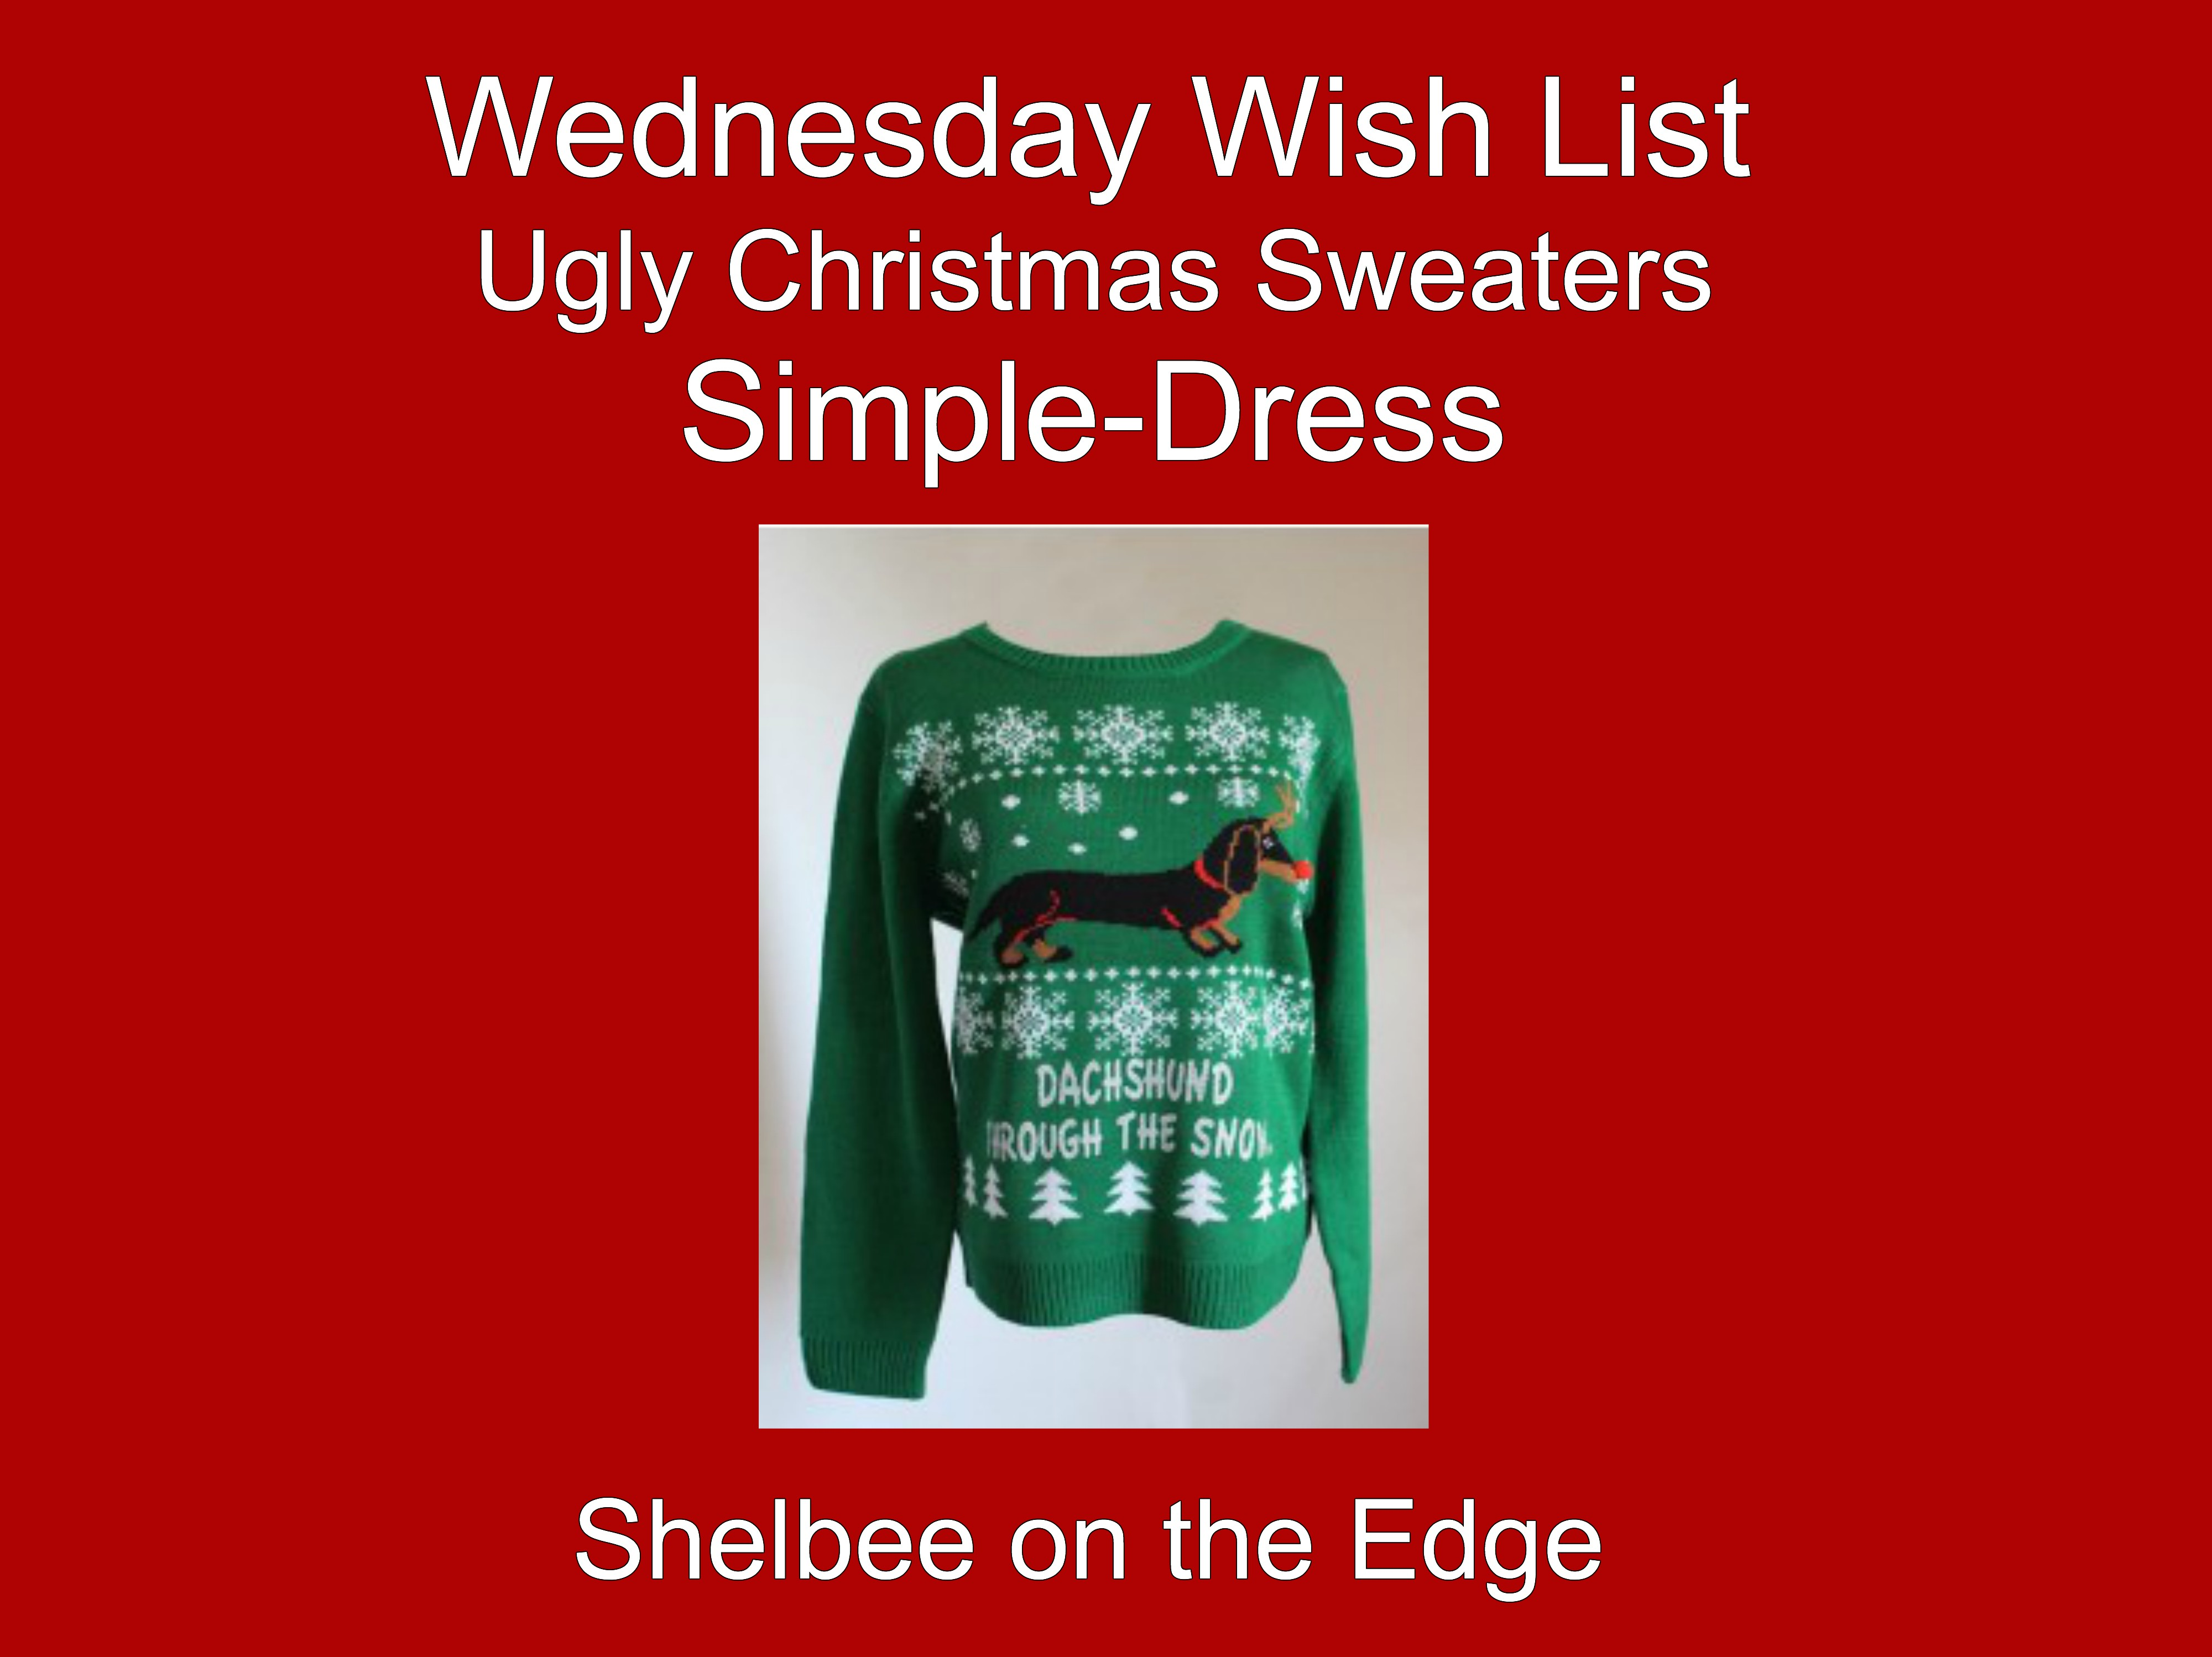 Wednesday Wish List: Ugly Christmas Sweaters from Simple-Dress